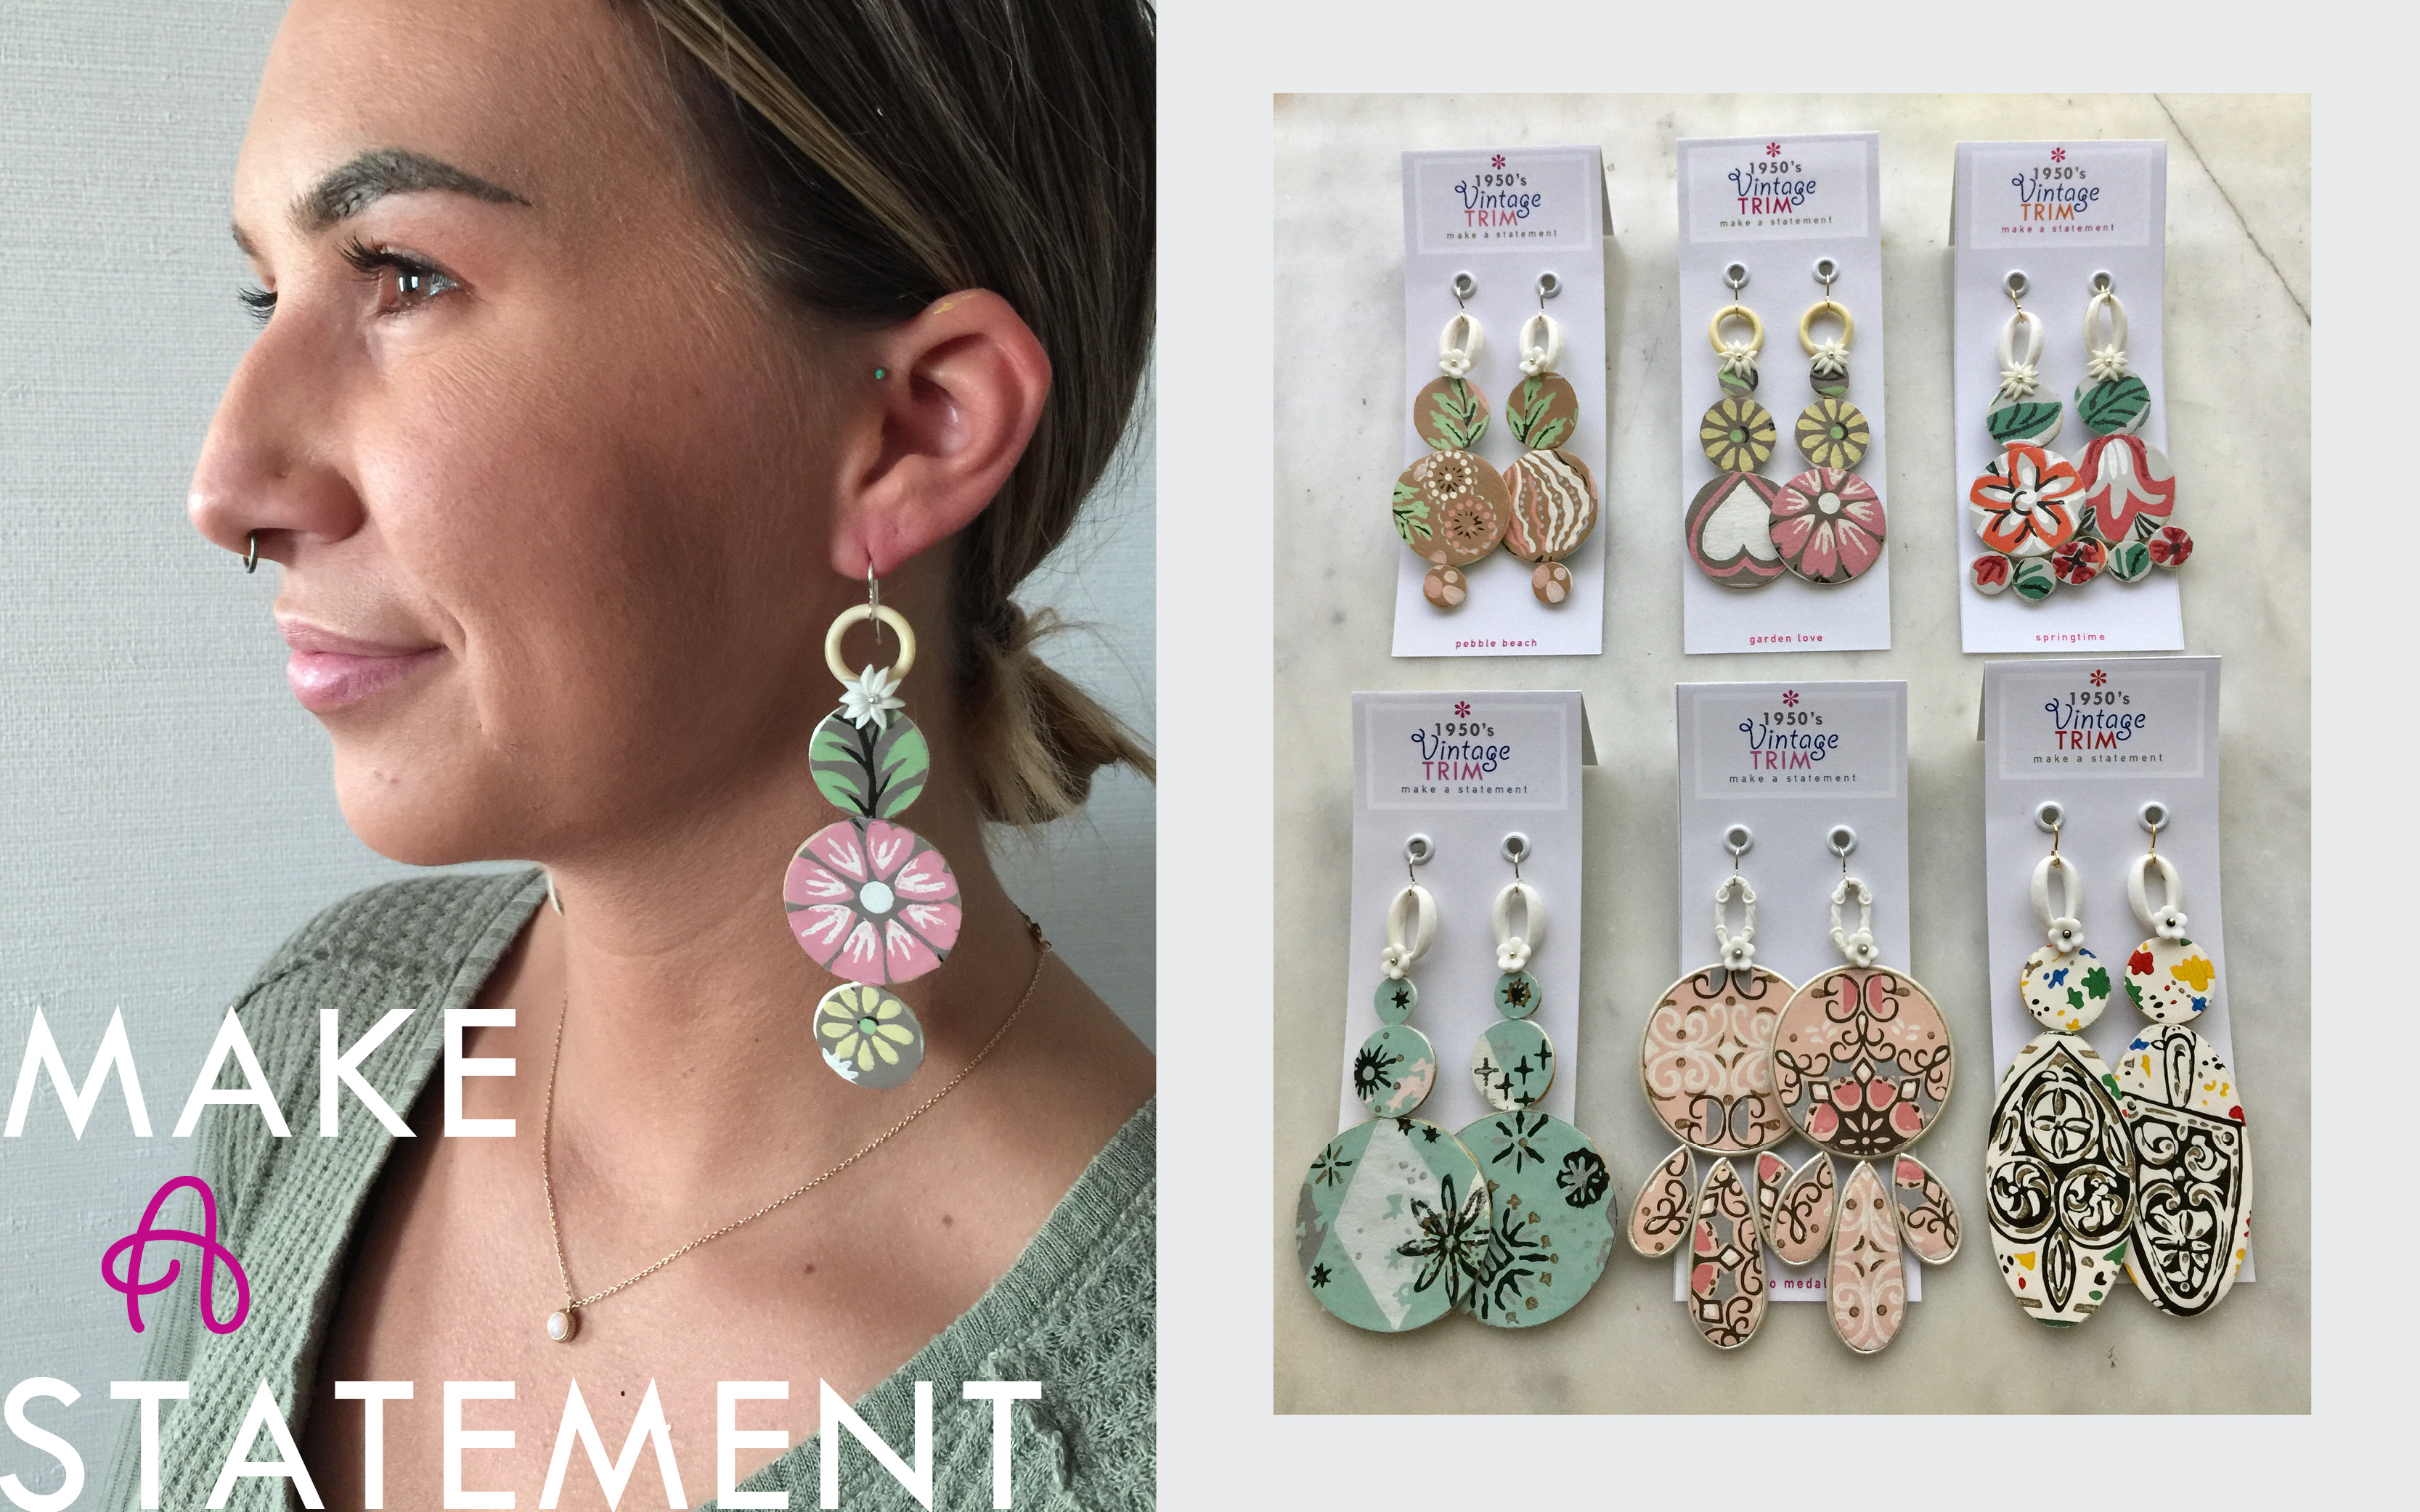 Trunk Show True Ideas earrings